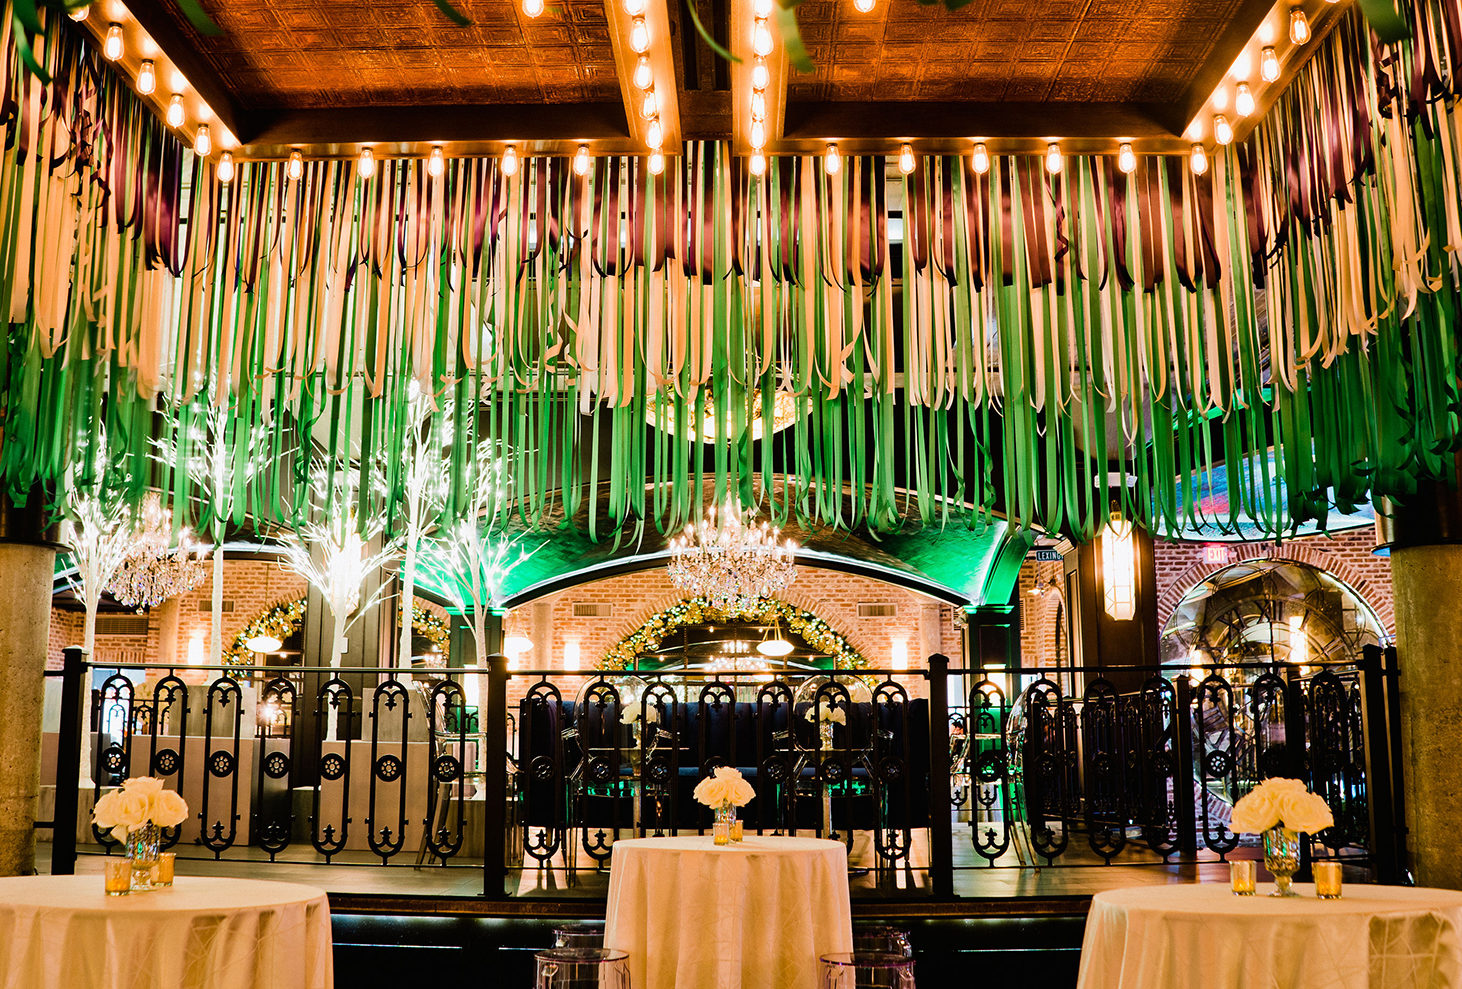 Corporate event with green hanging decor